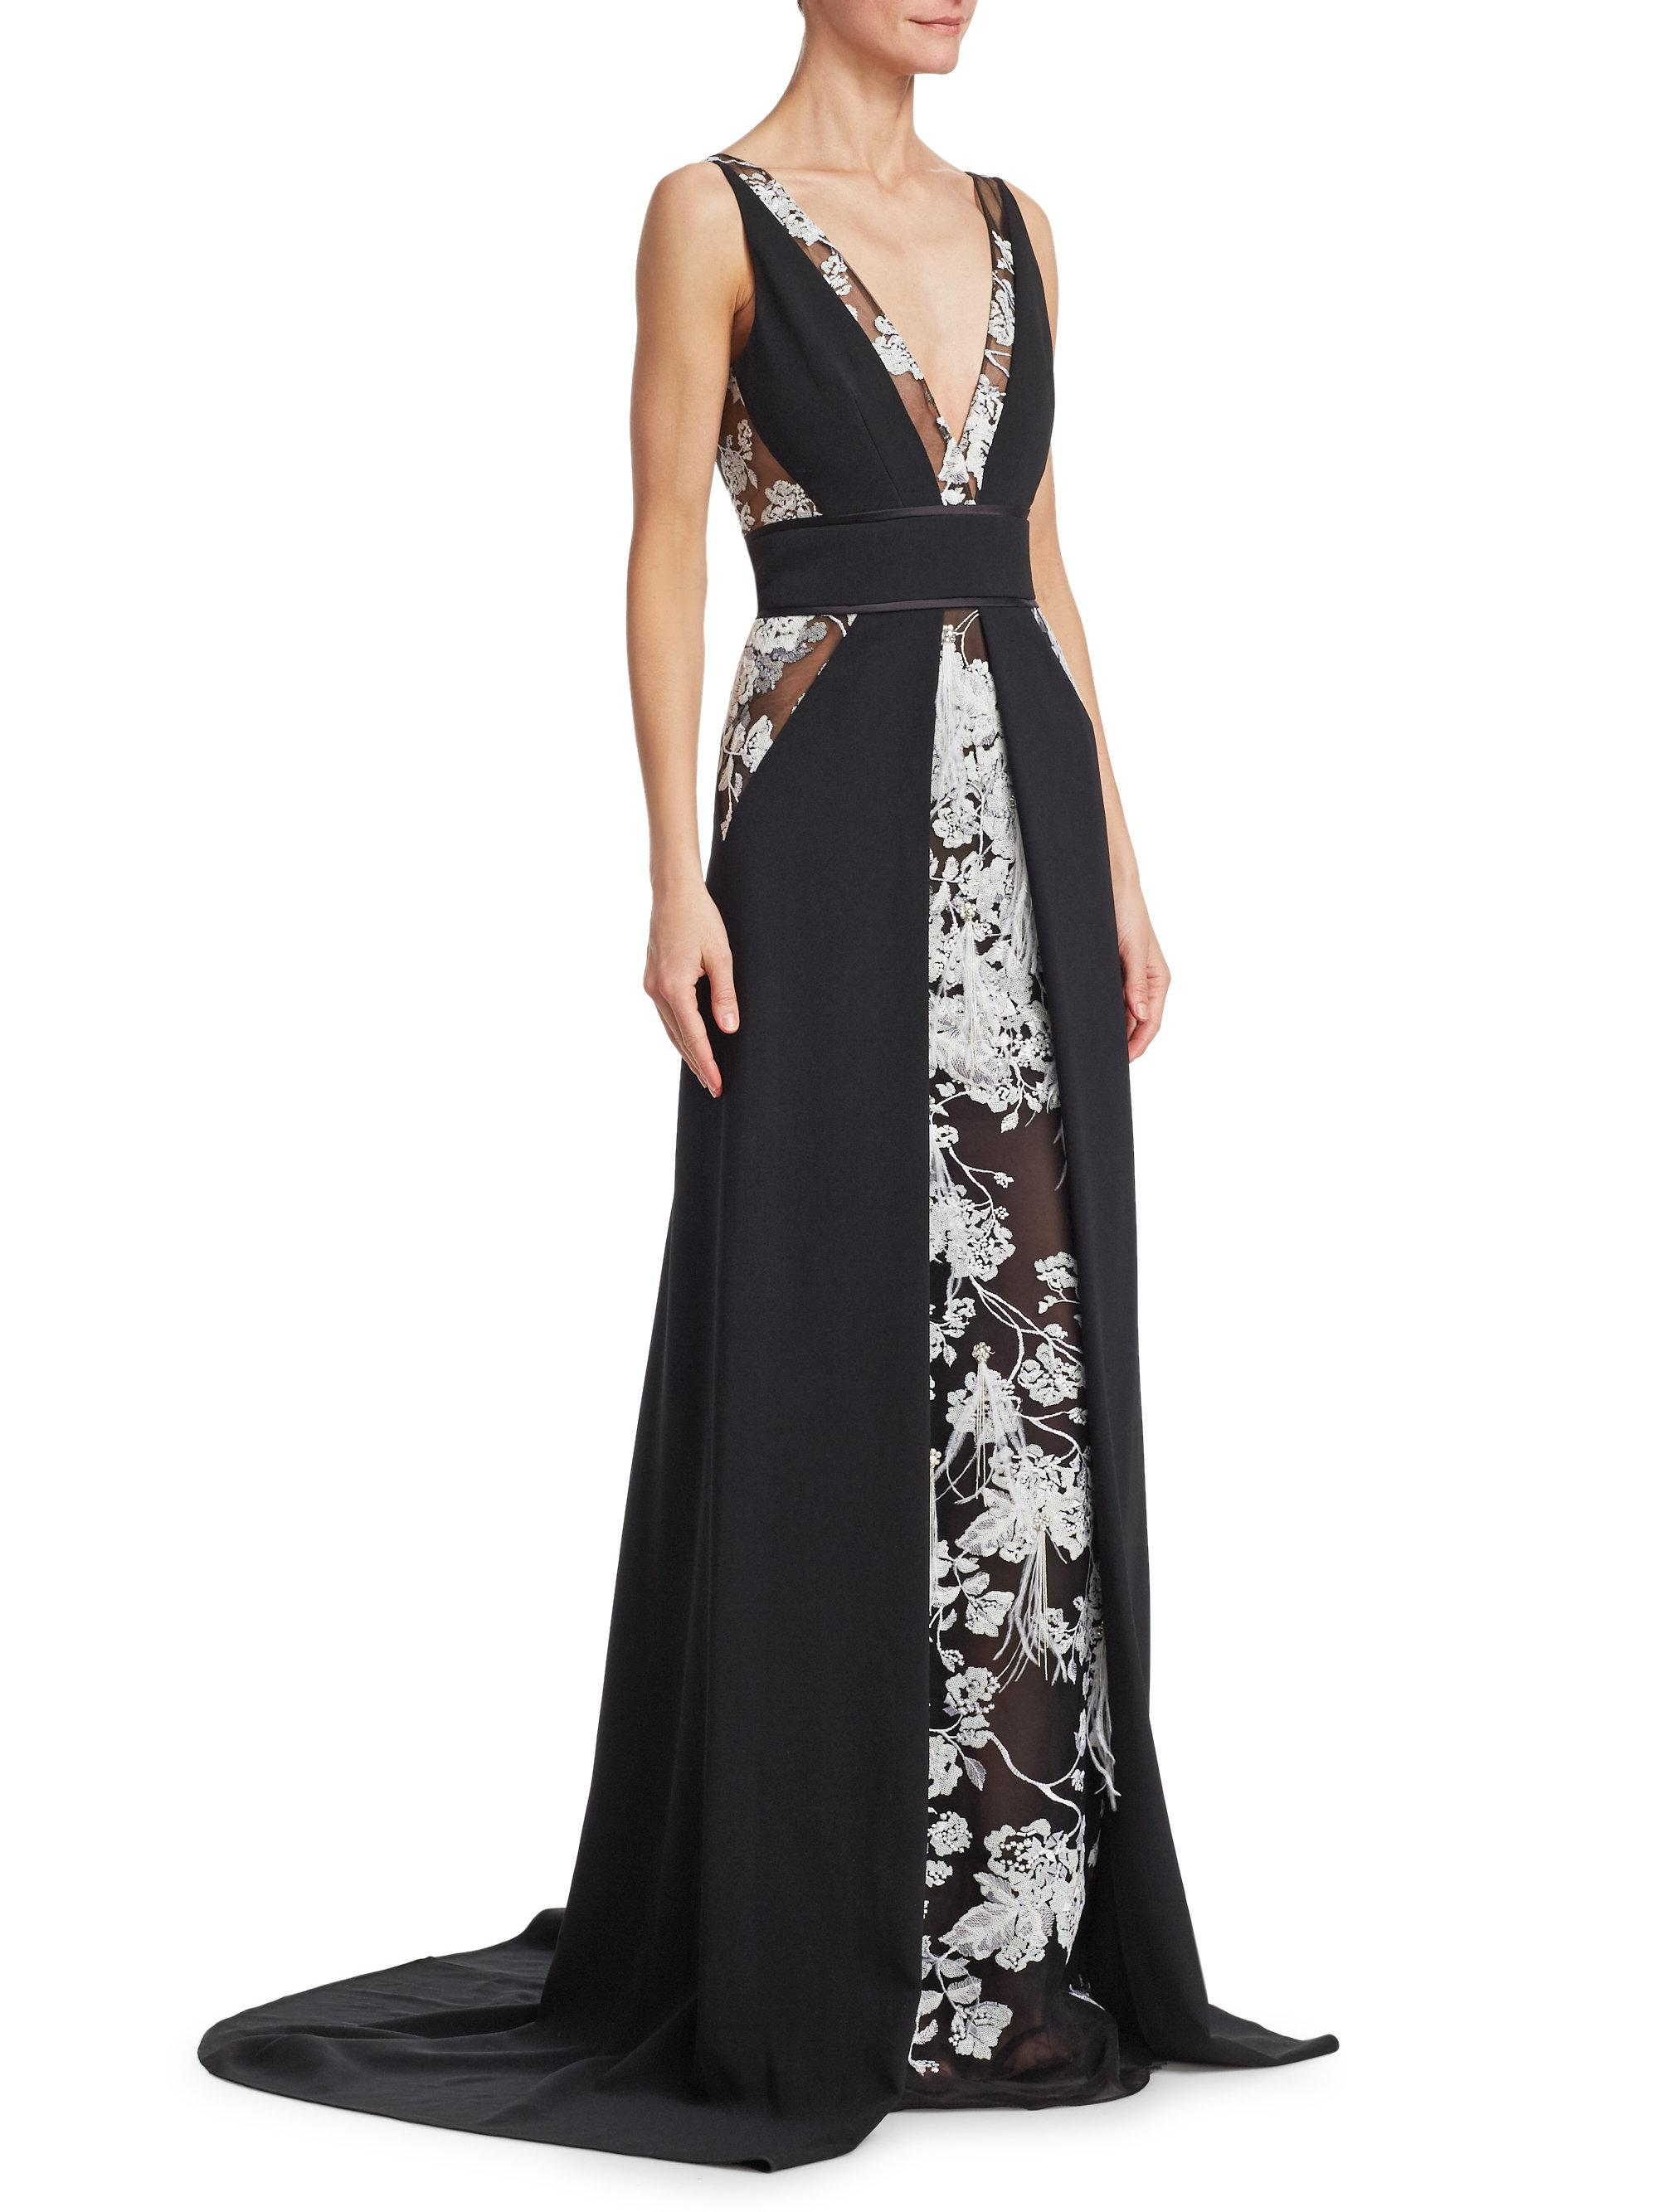 Stretch Crepe Embroidered Gown Pamella Roland Buy Cheap Store Cool Shopping Buy Cheap Outlet Locations Big Sale Sale Online Outlet Shop Offer rMs5ZaL